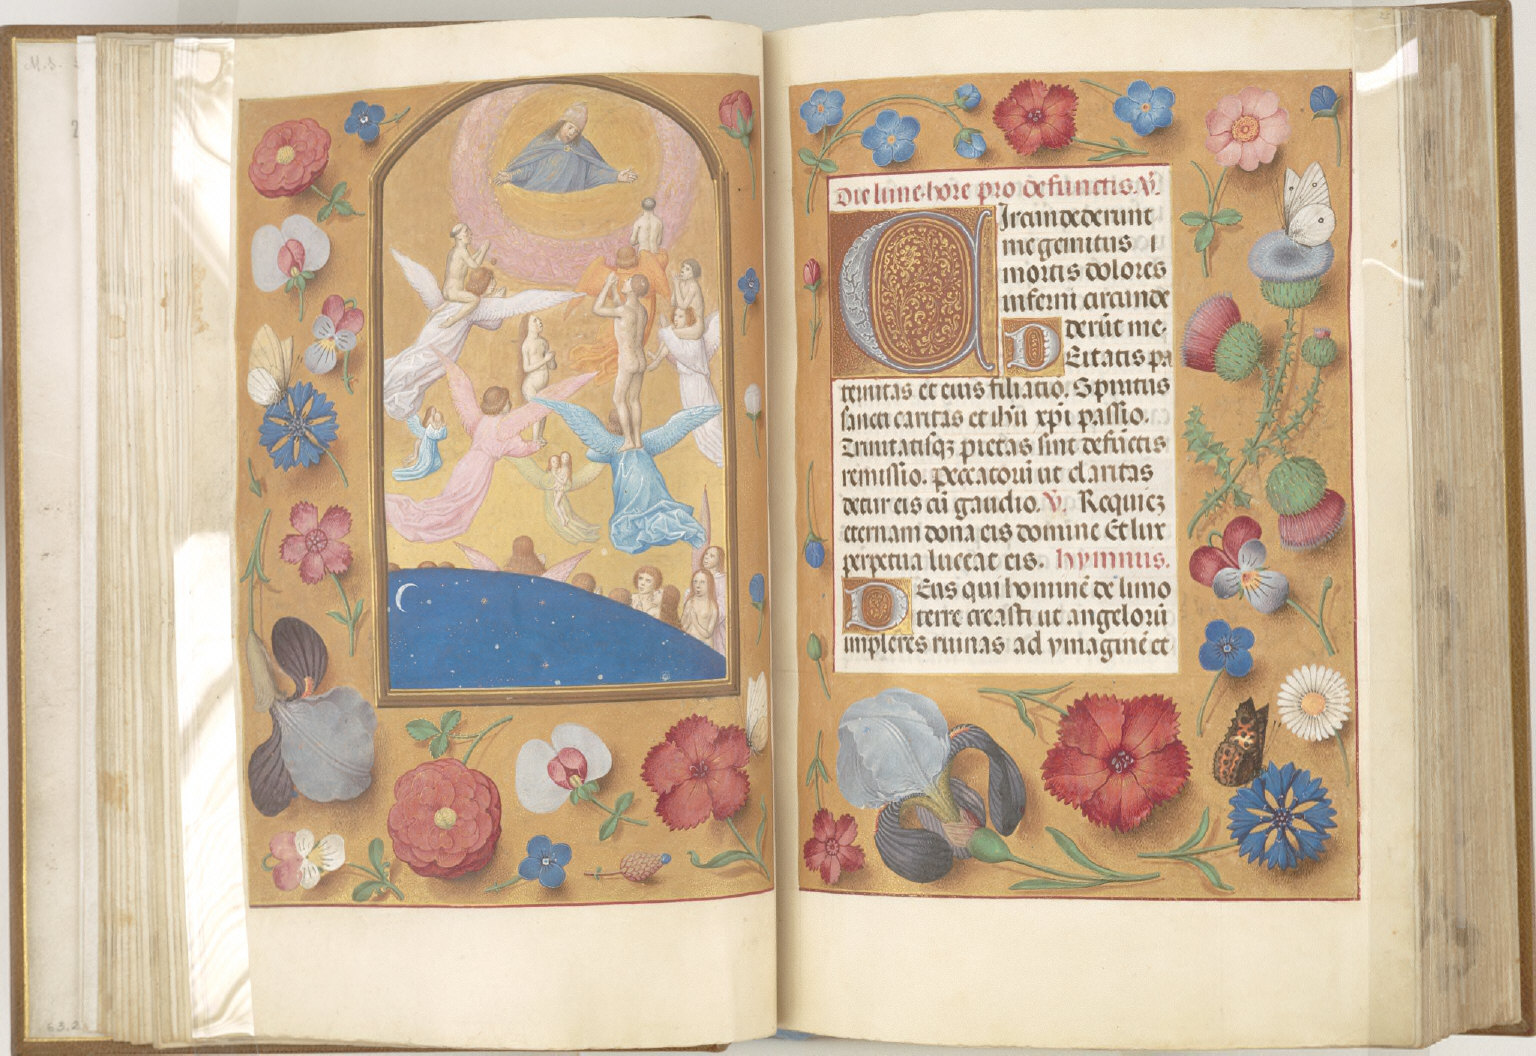 Hours of Queen Isabella the Catholic, Queen of Spain: fol. 25 (recto)